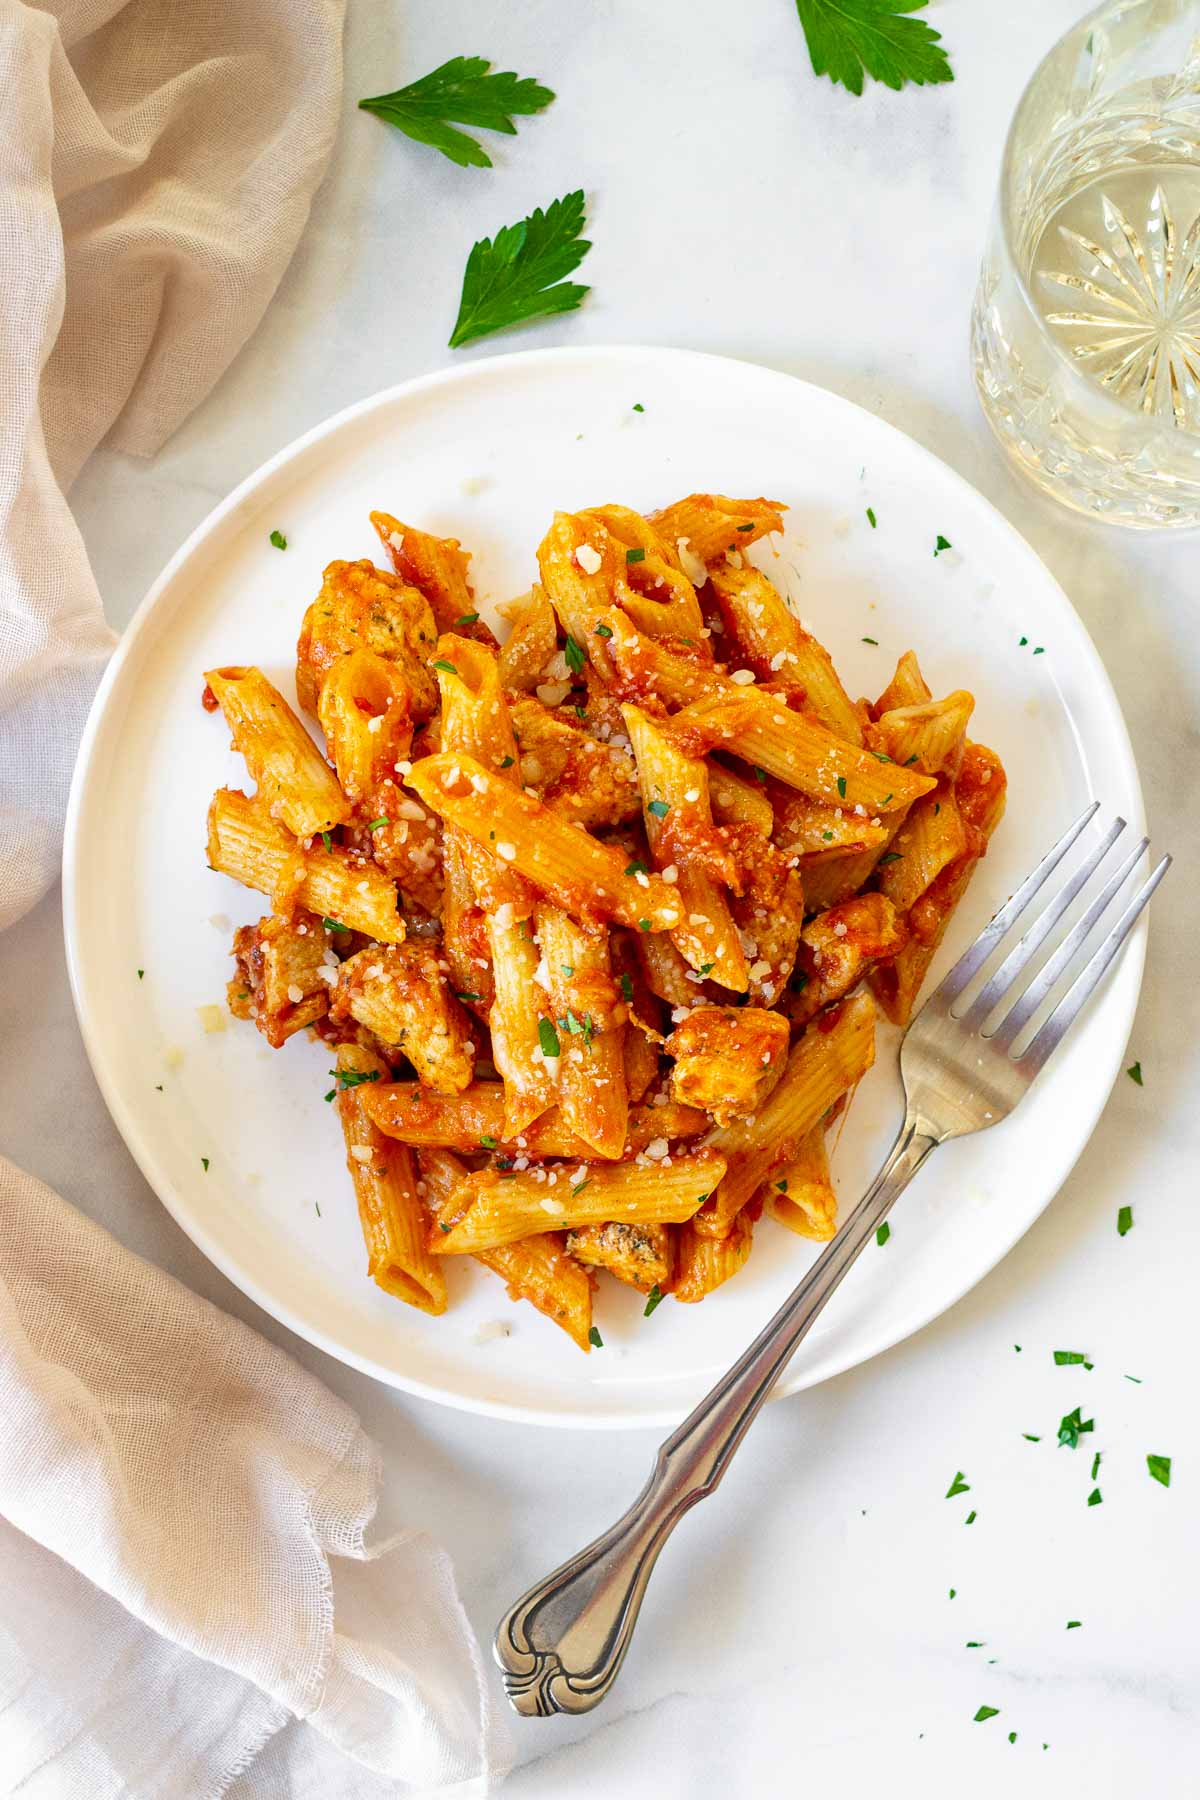 Instant Pot chicken penne on a white plate with a fork and glass of wine